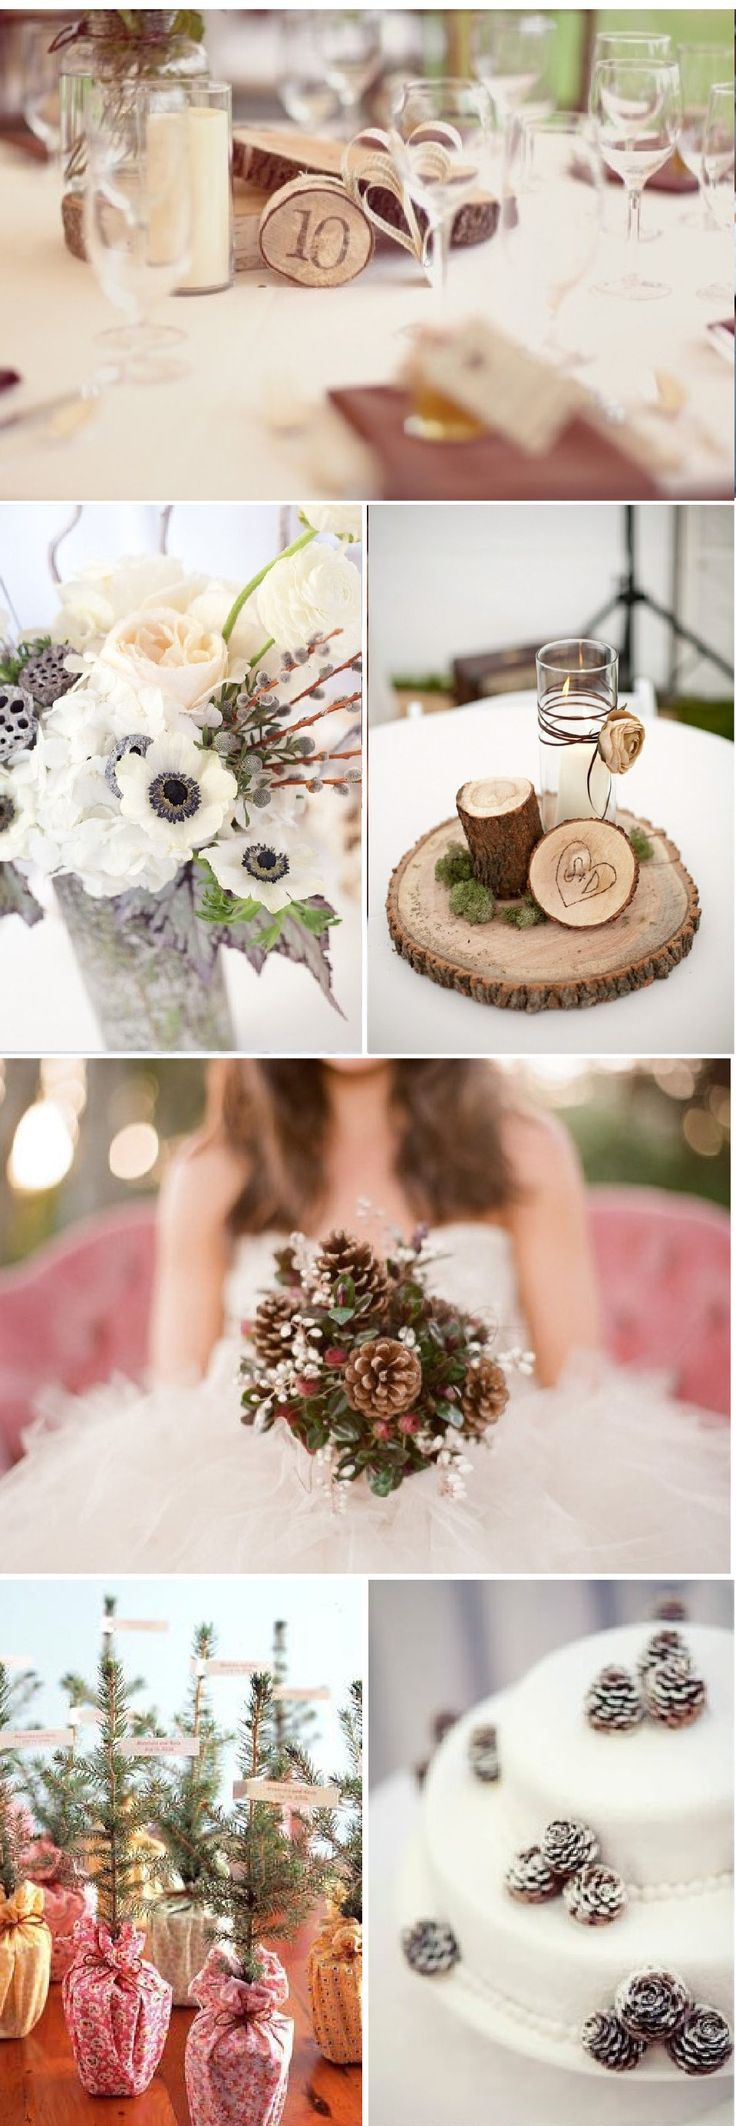 Mariage neigeux, Mariage heureux, Mariage rustic, Mariage chic